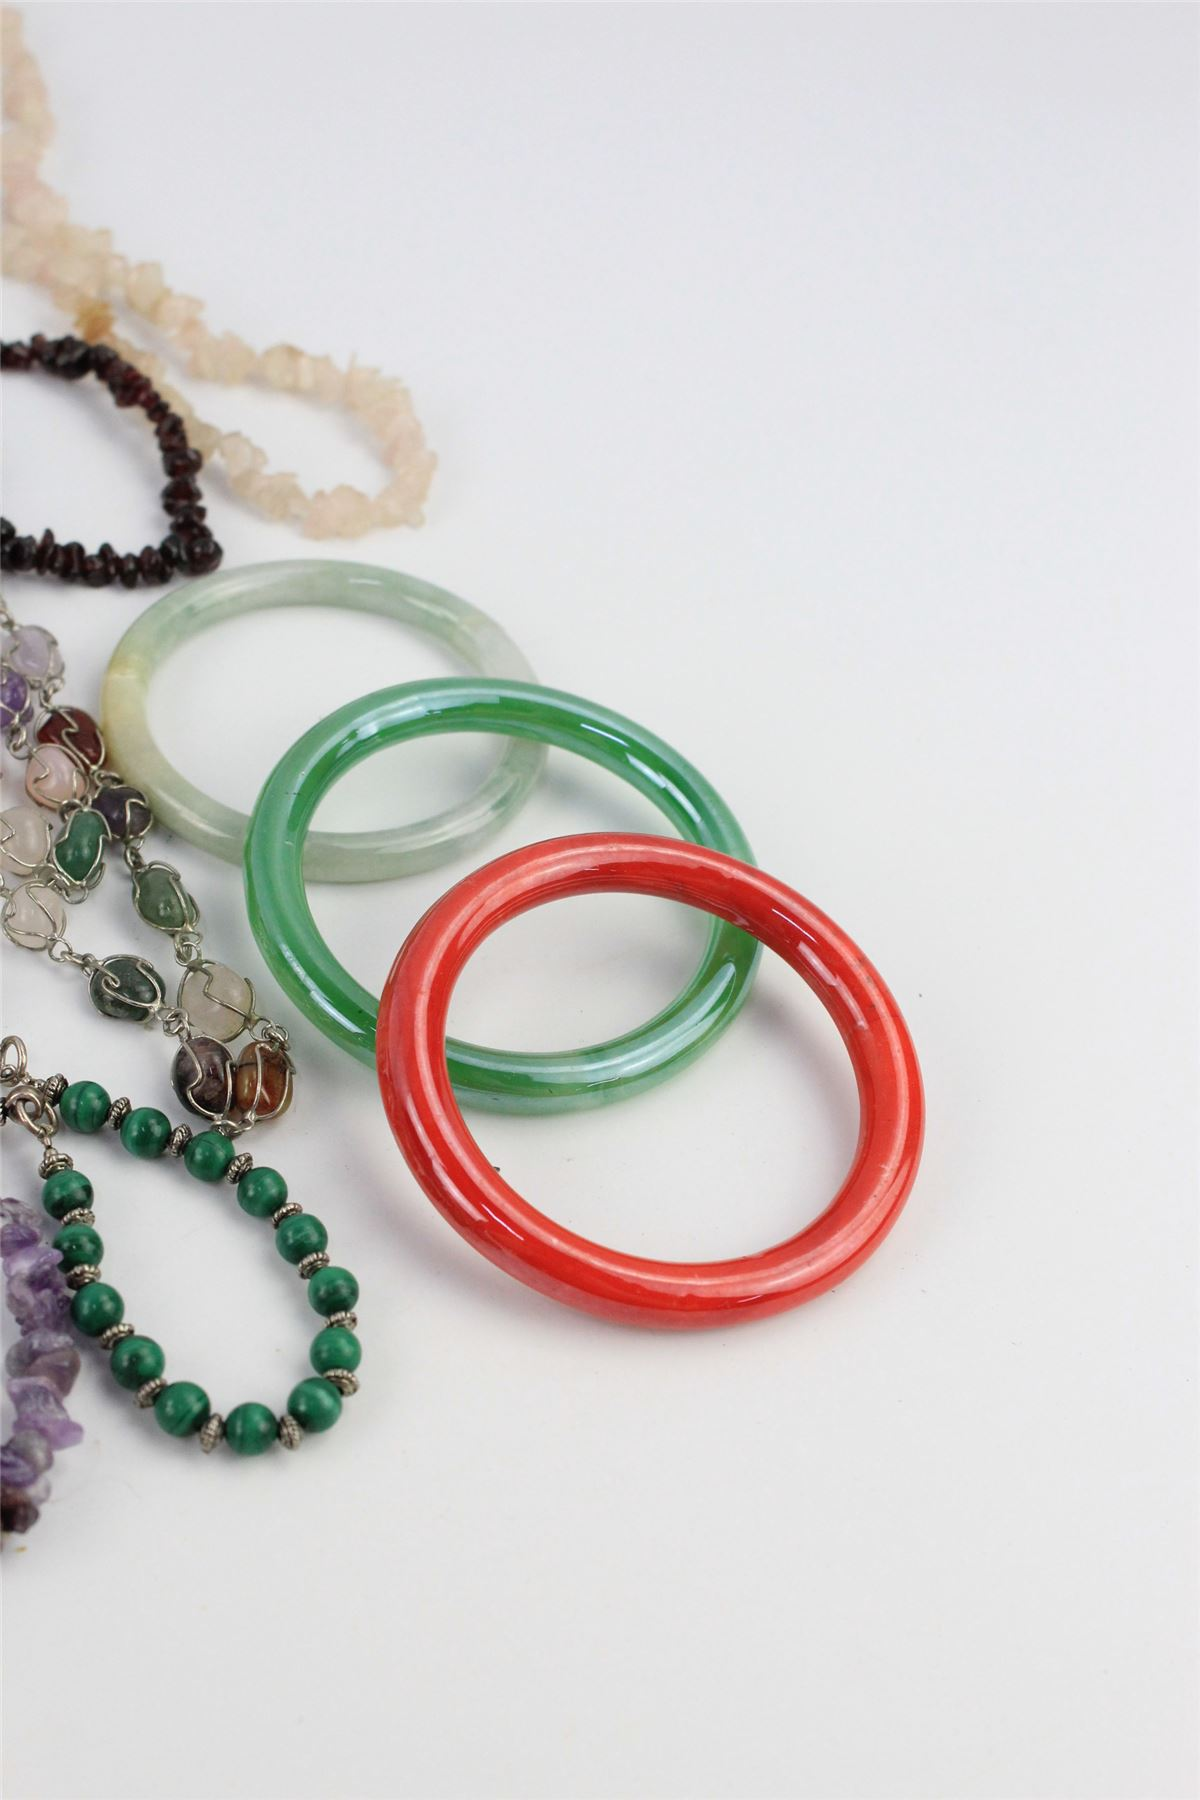 COLLECTION OF SEMI-PRECIOUS Gemstone Mixed Bead Necklaces ...